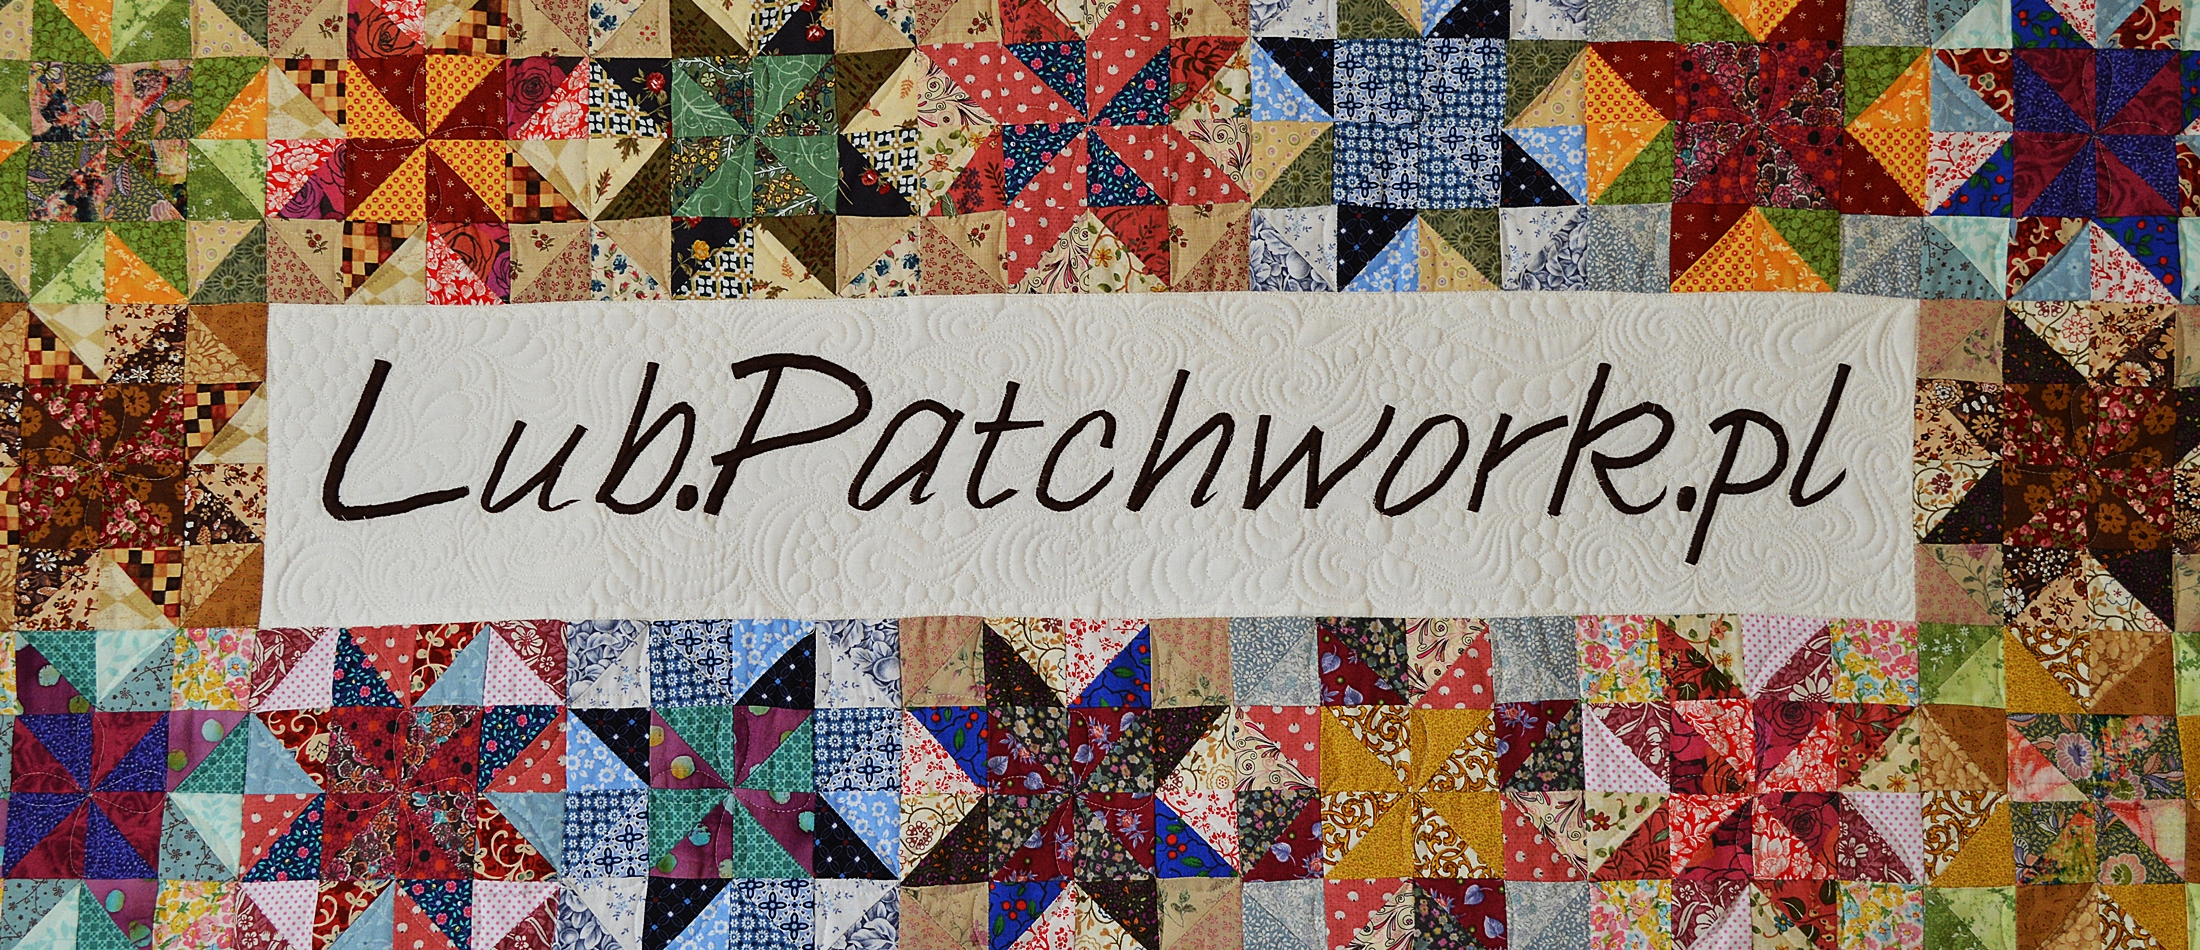 https://www.facebook.com/Lub.Patchwork